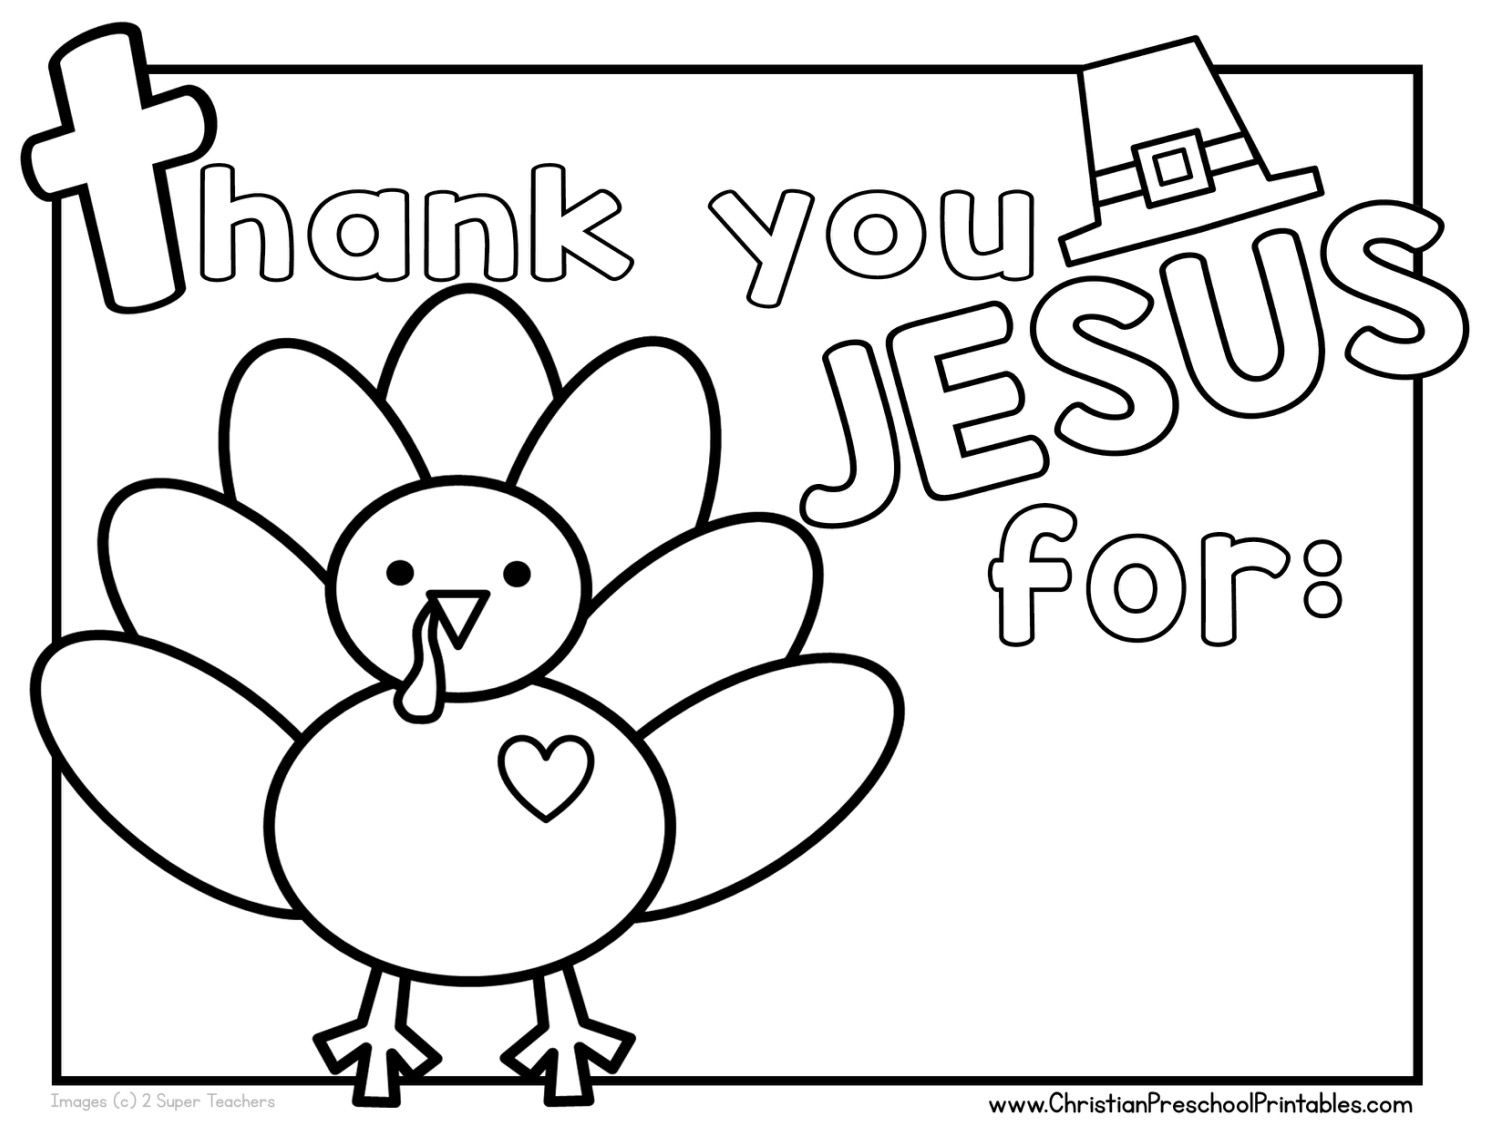 Free sunday school lessons coloring pages coloring pages for Thanksgiving sunday school crafts